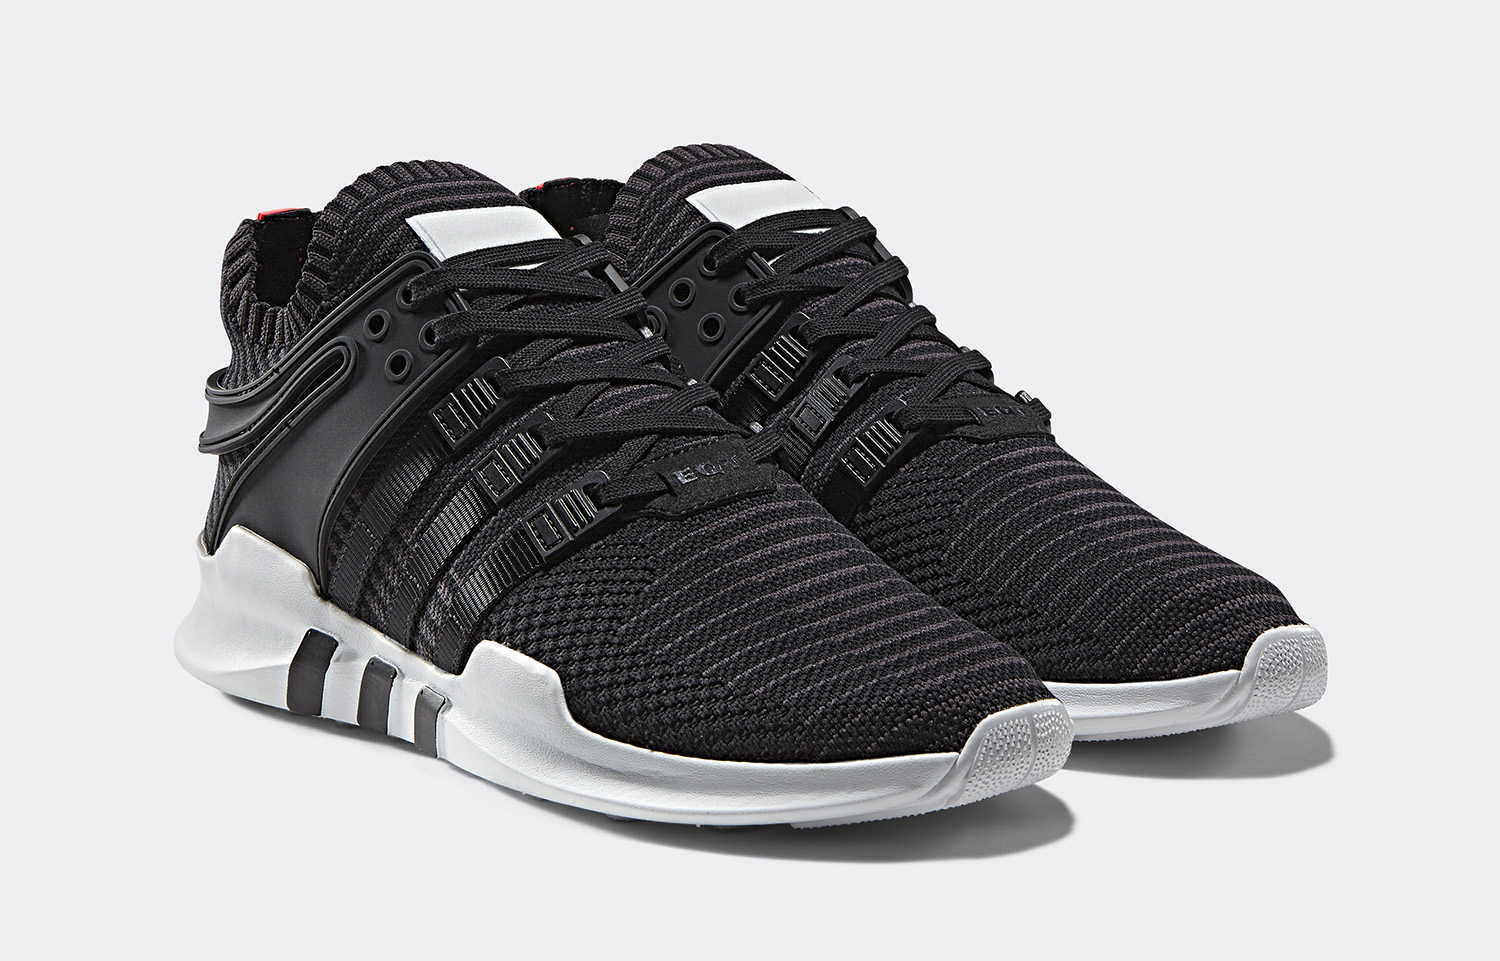 Adidas EQT Support Adv PK Black Turbo Red